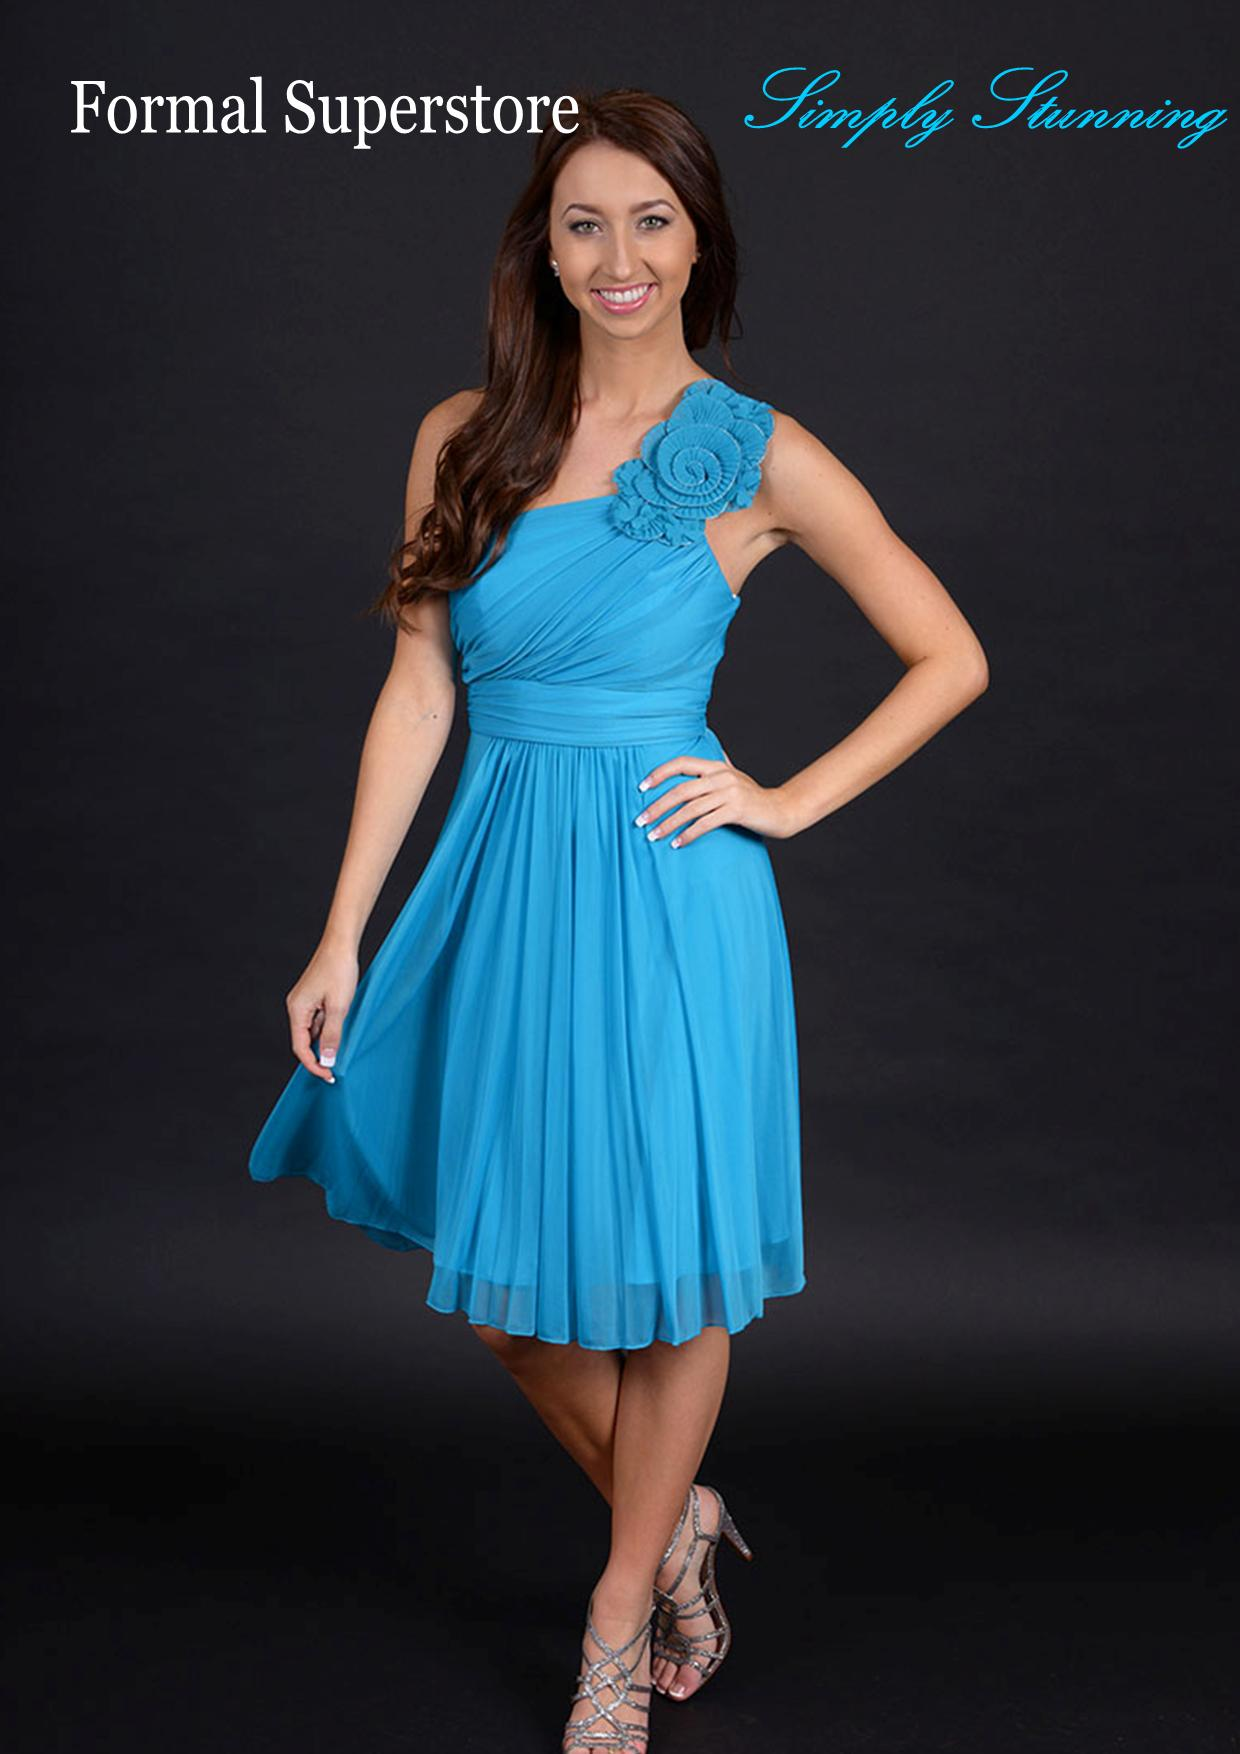 Lulus is best known for our huge selection of cute dresses under $ From everyday casual to prom. x. Free Shipping Over $50 & Free Returns! See Details. Free Shipping Over $50 & Free Returns! See Details Party Dresses. Formal Dresses. Bridesmaid Dresses. Sale. All Sale. Current Promotions.